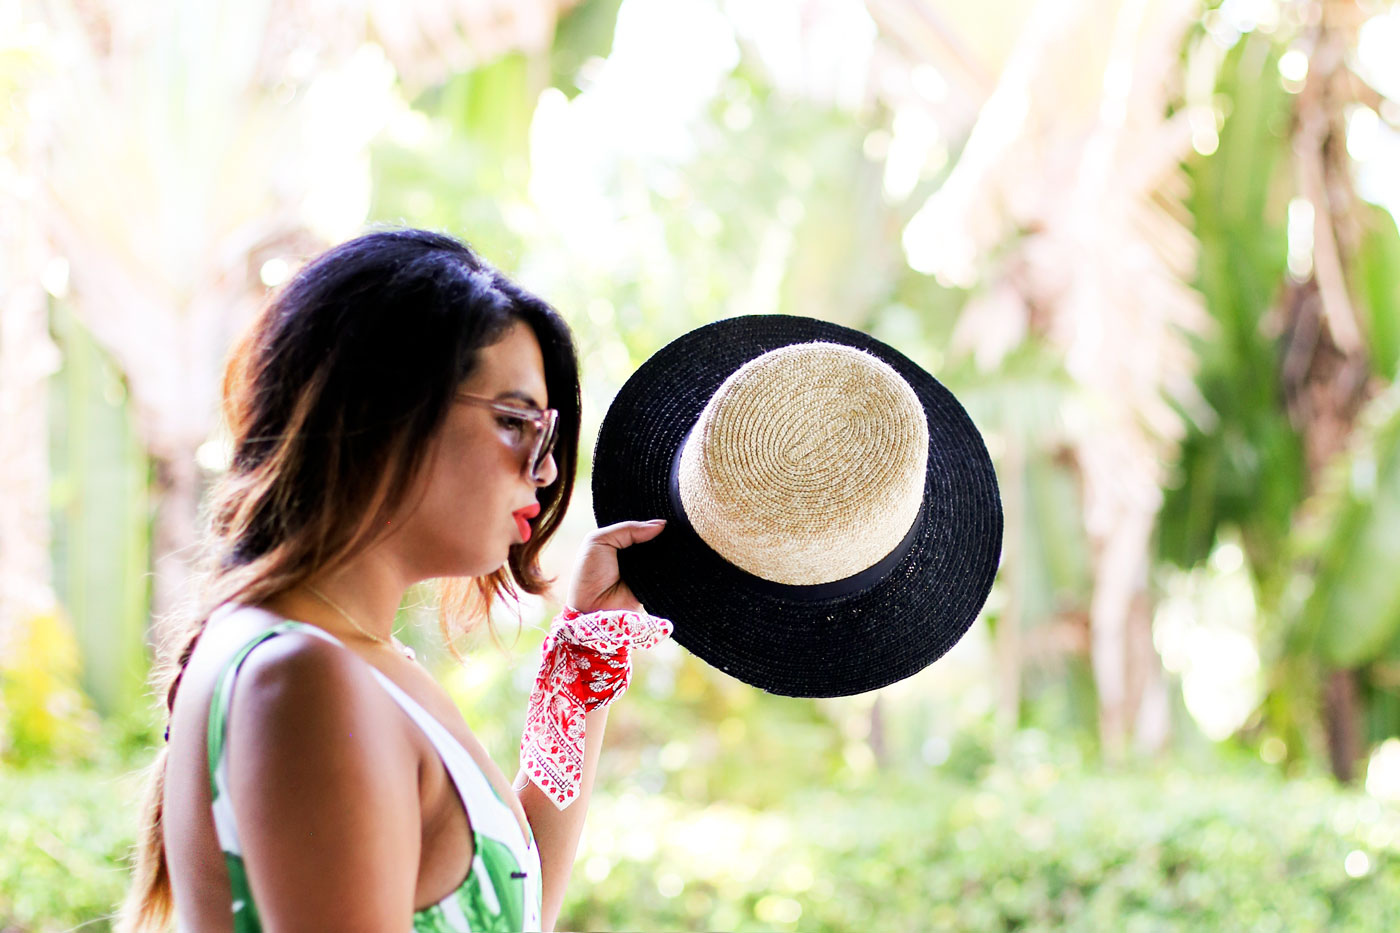 TAOS-who-what-wear-boater-hat